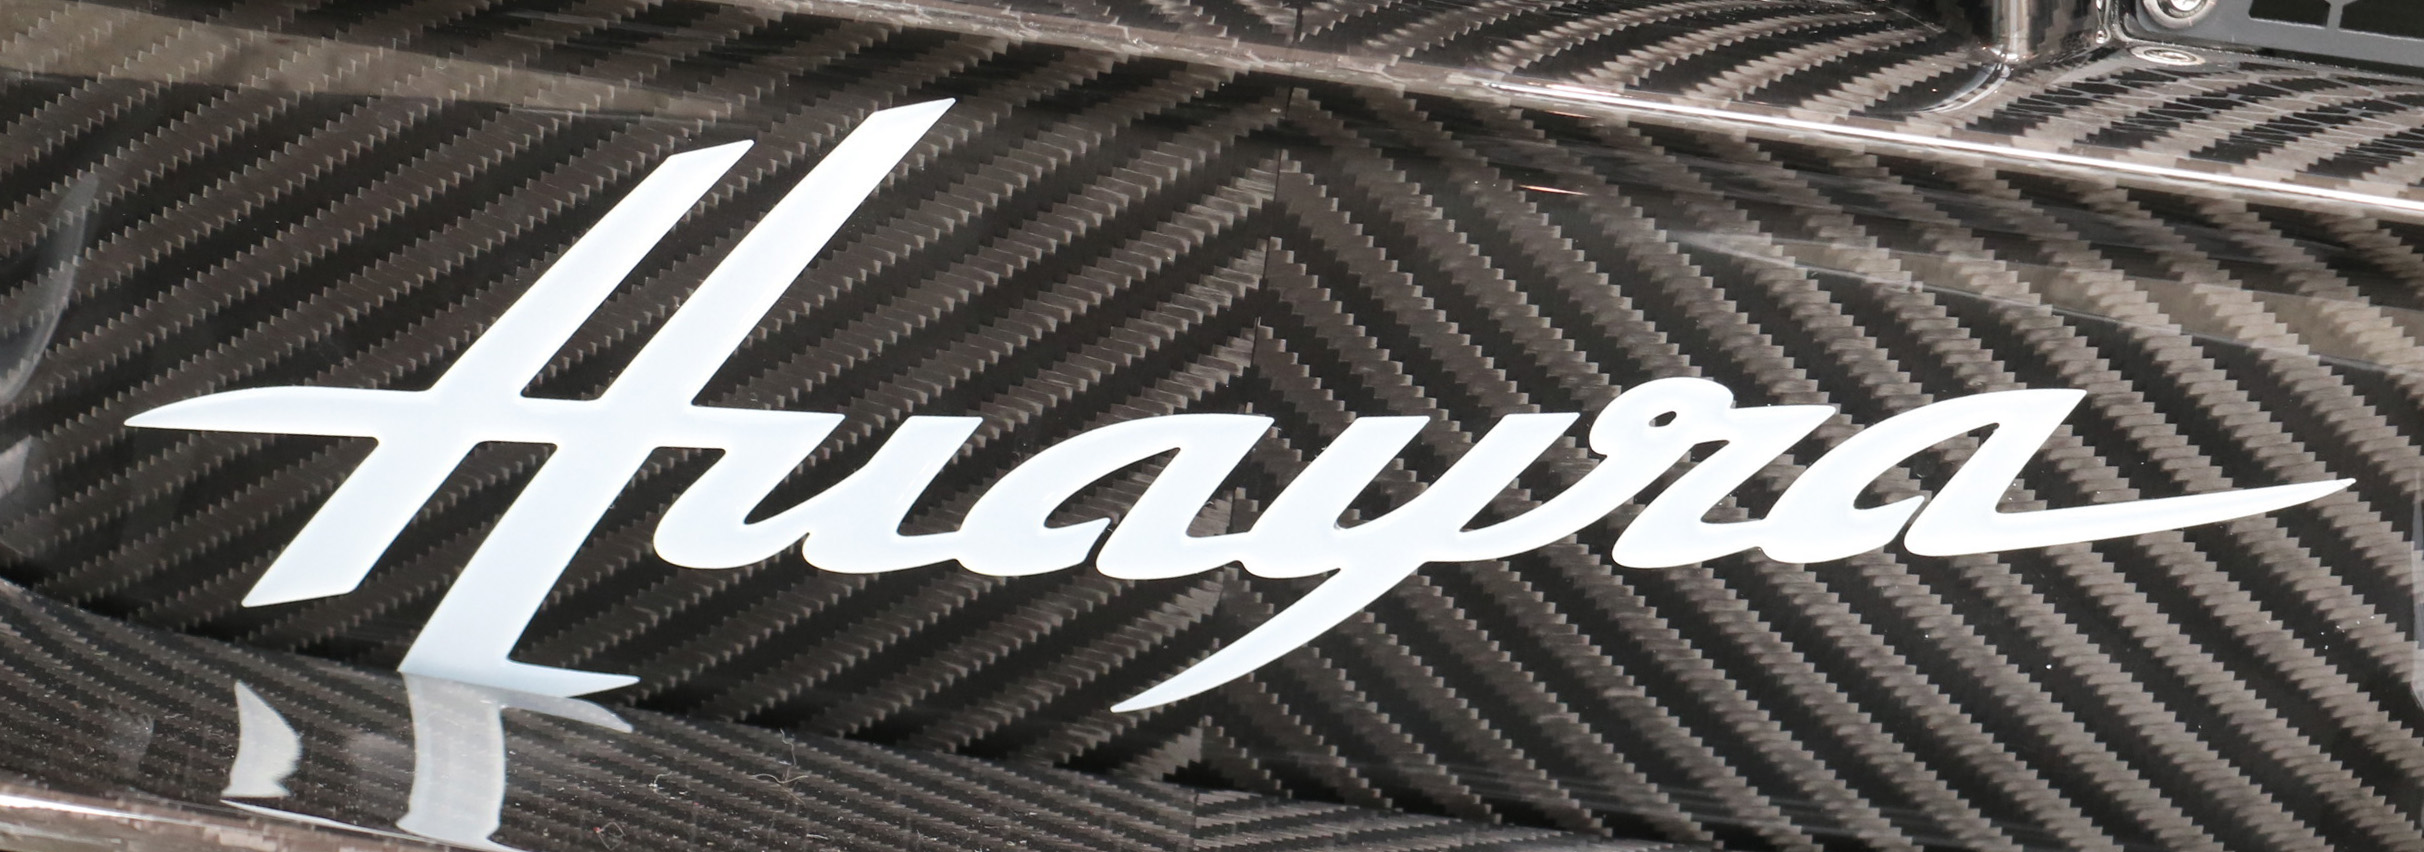 Car Brands Starting With A >> Pagani Logo Meaning and History [Pagani symbol]